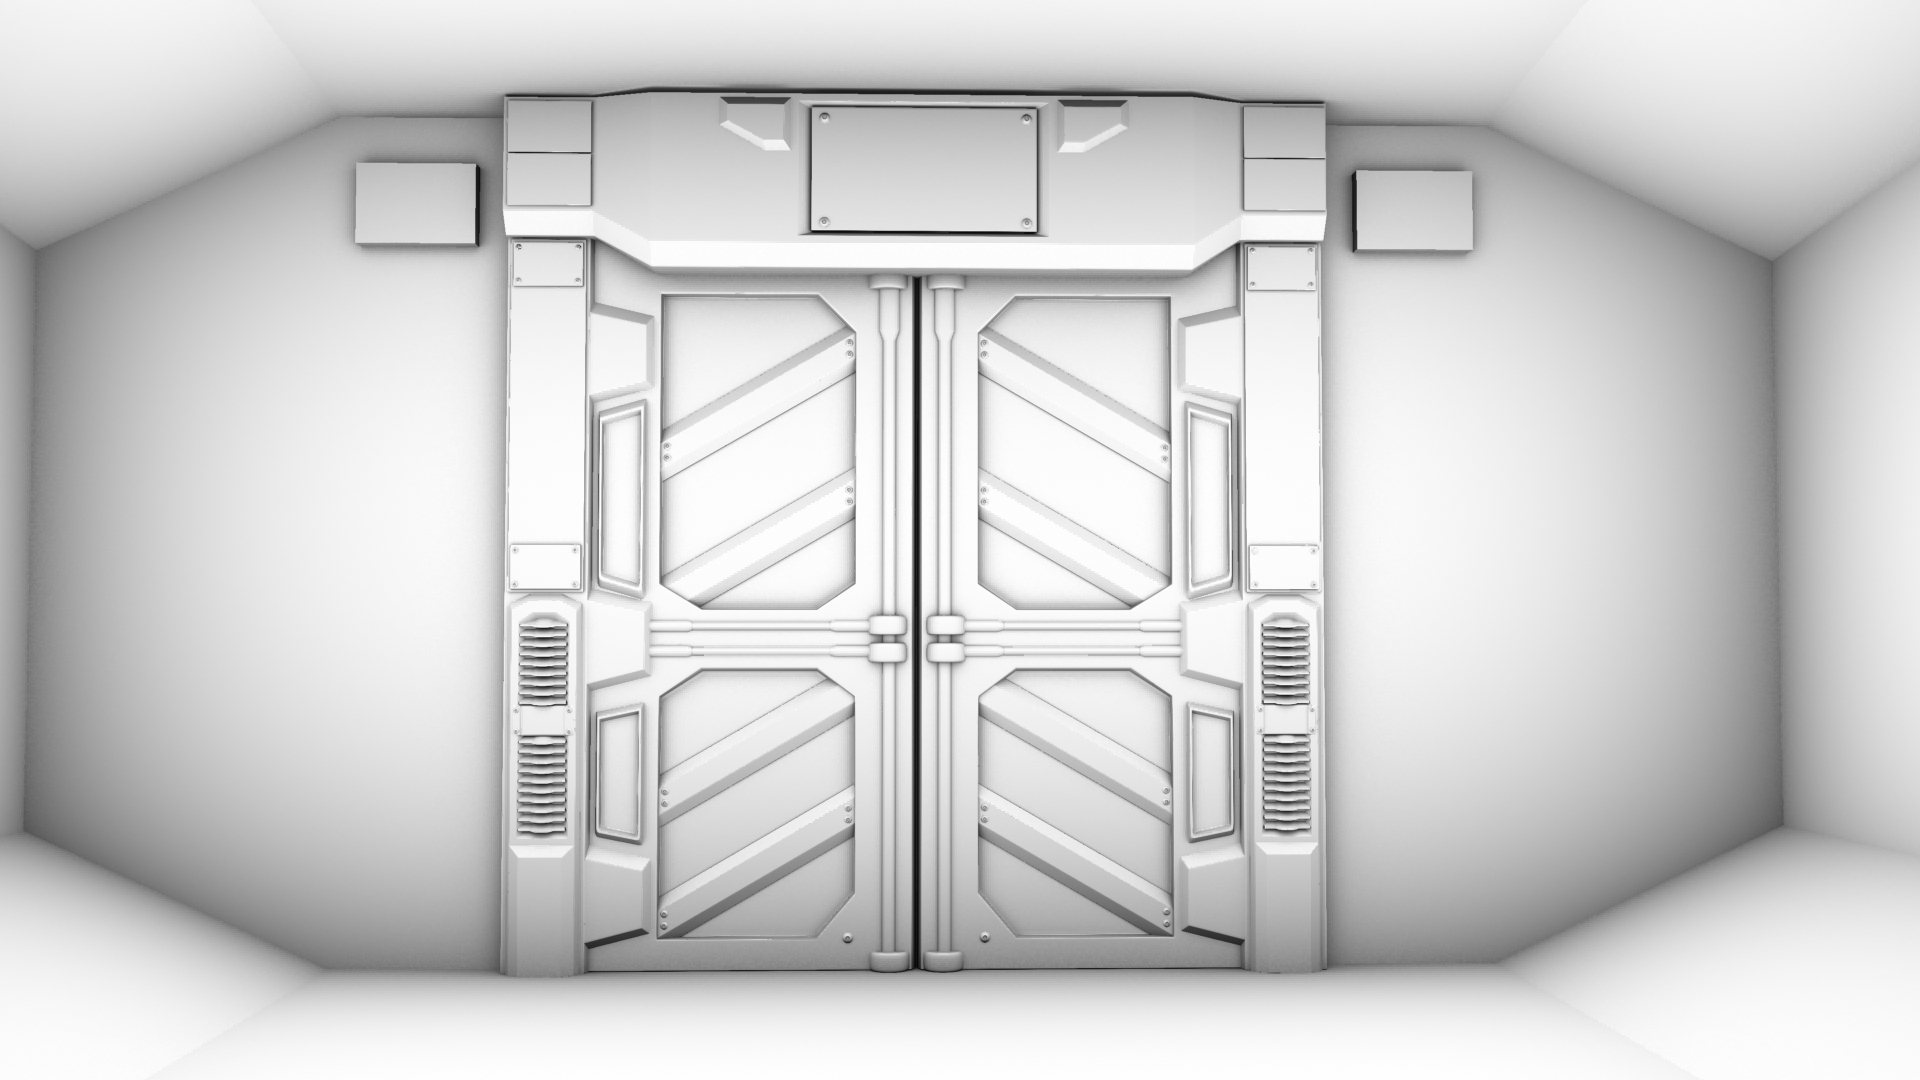 Several Artistic Concepts For Main Door : Several Artistic Concepts For Main Door : Sci-Fi Door